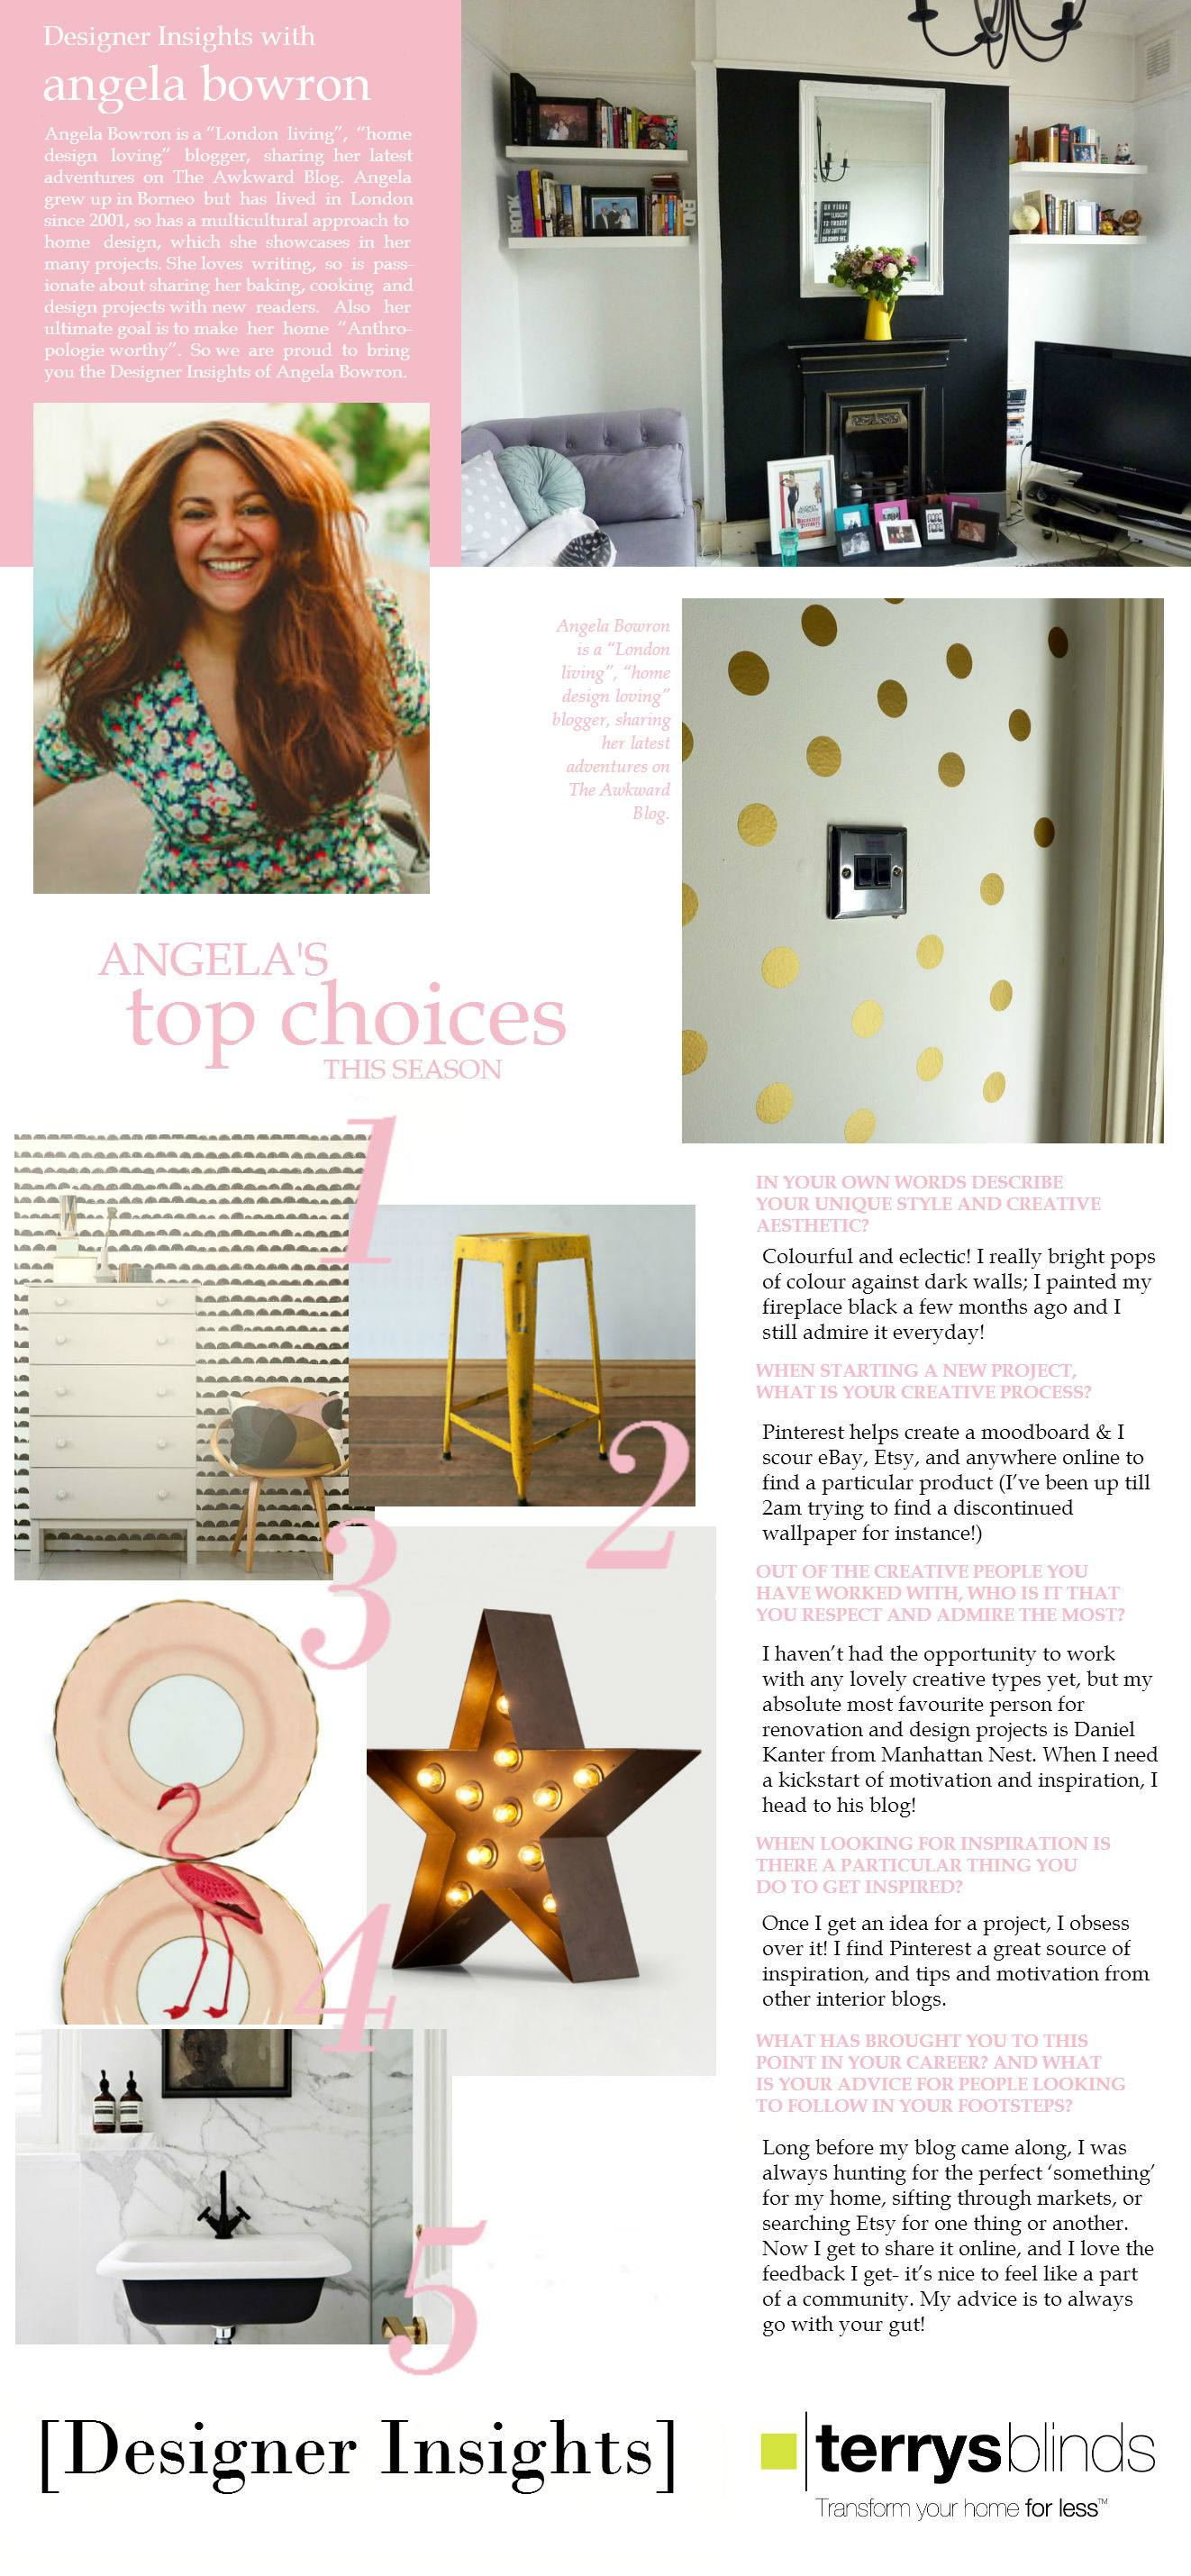 Designer Insights - Angela Bowron